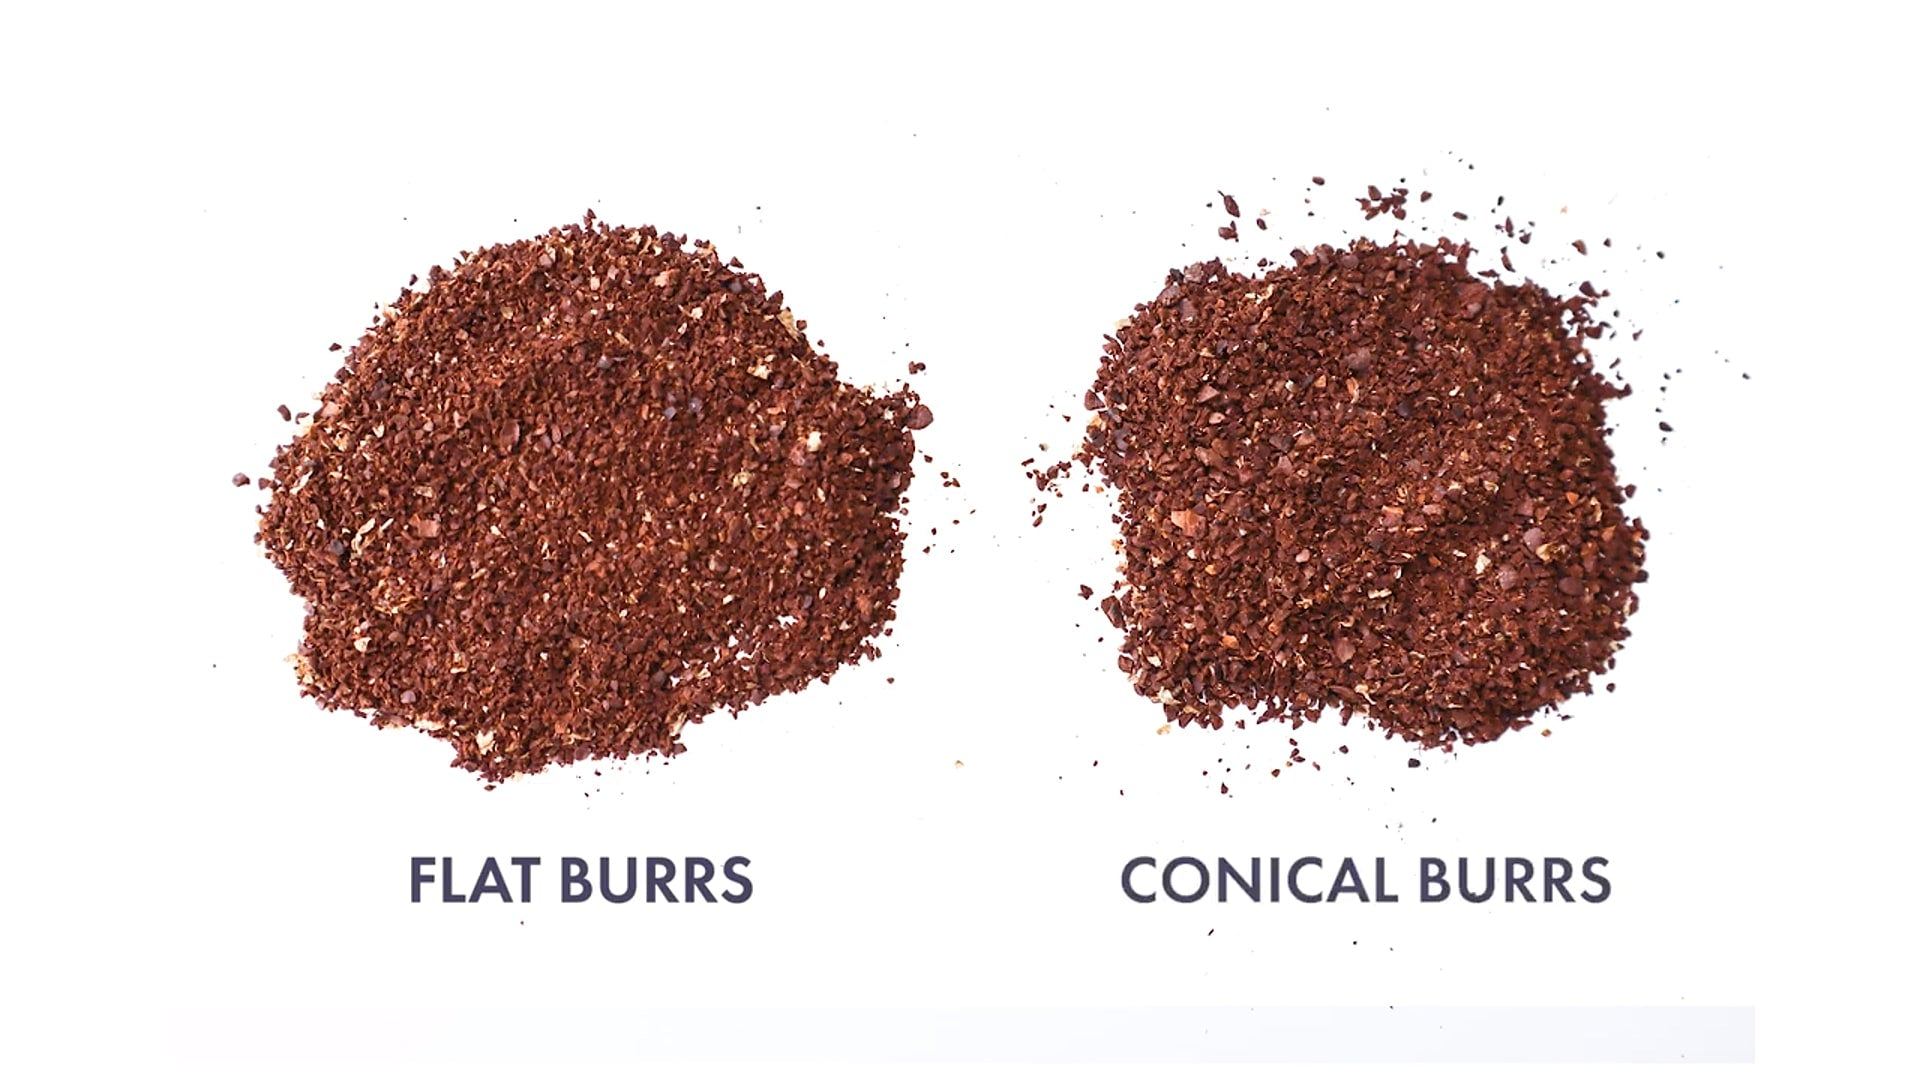 Ground coffee using flat burrs vs conical burrs